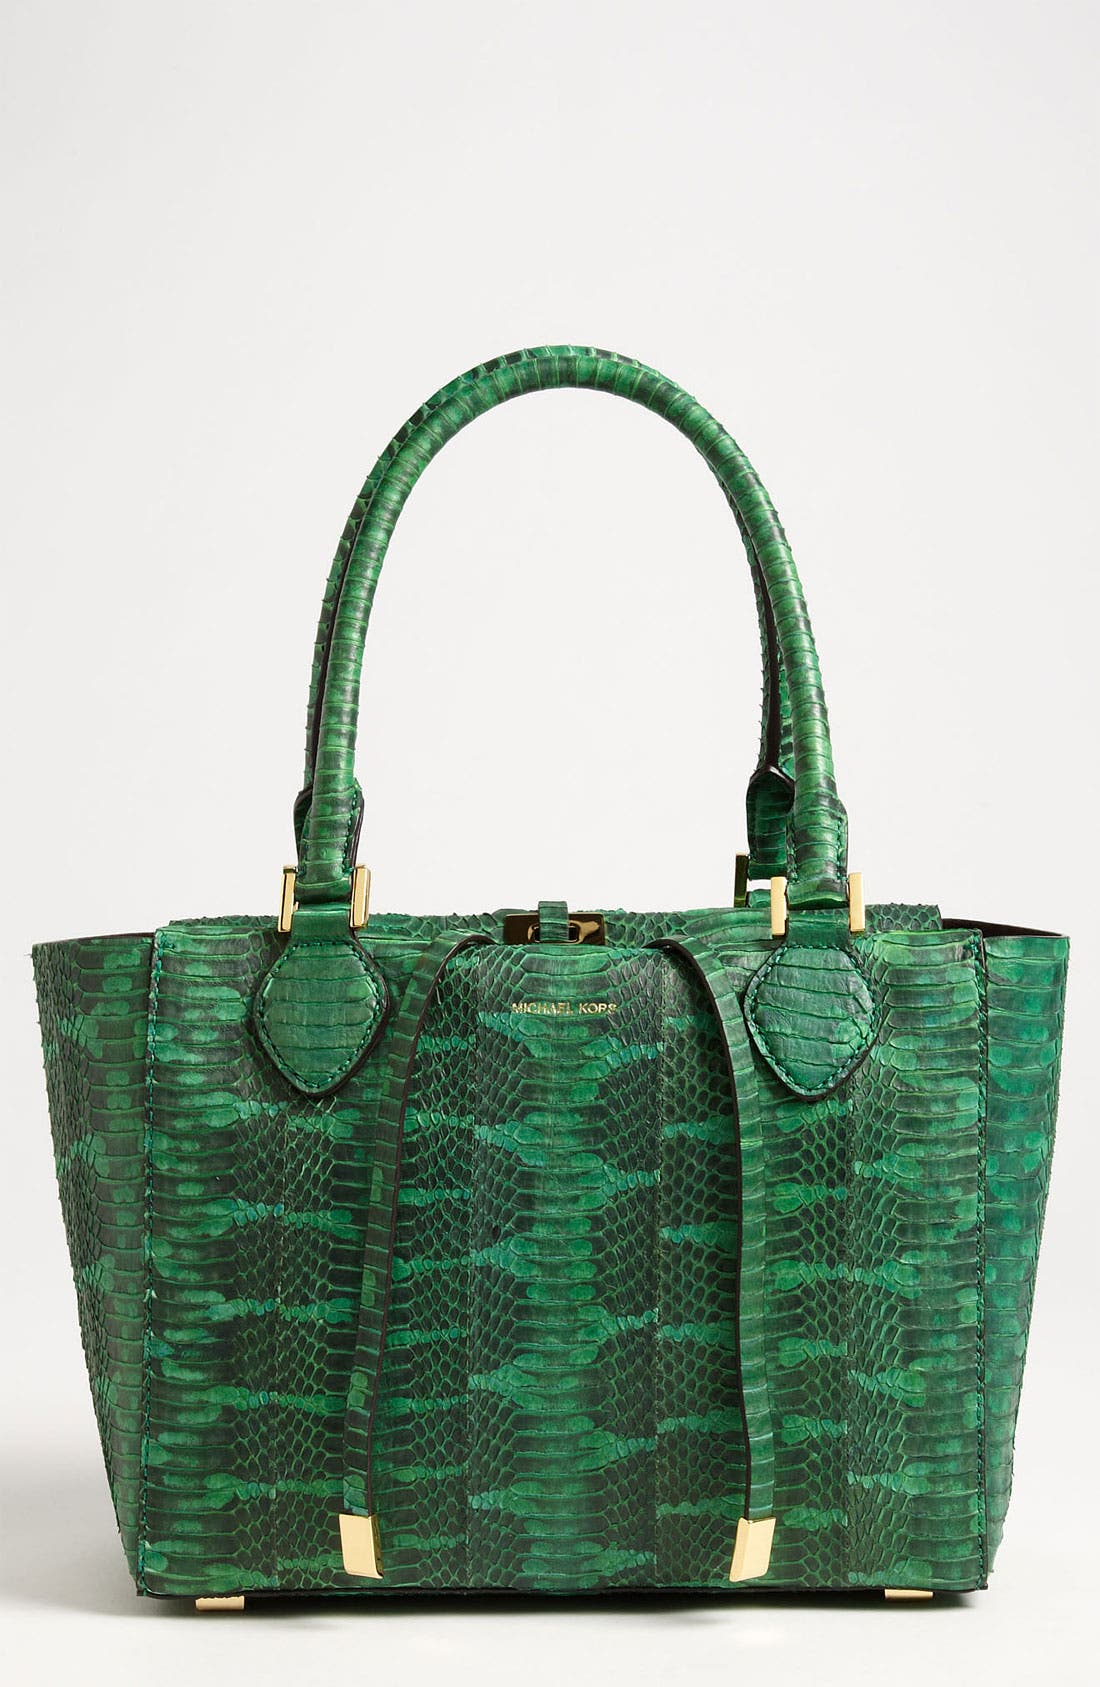 Alternate Image 1 Selected - Michael Kors 'Miranda' Genuine Snakeskin Tote